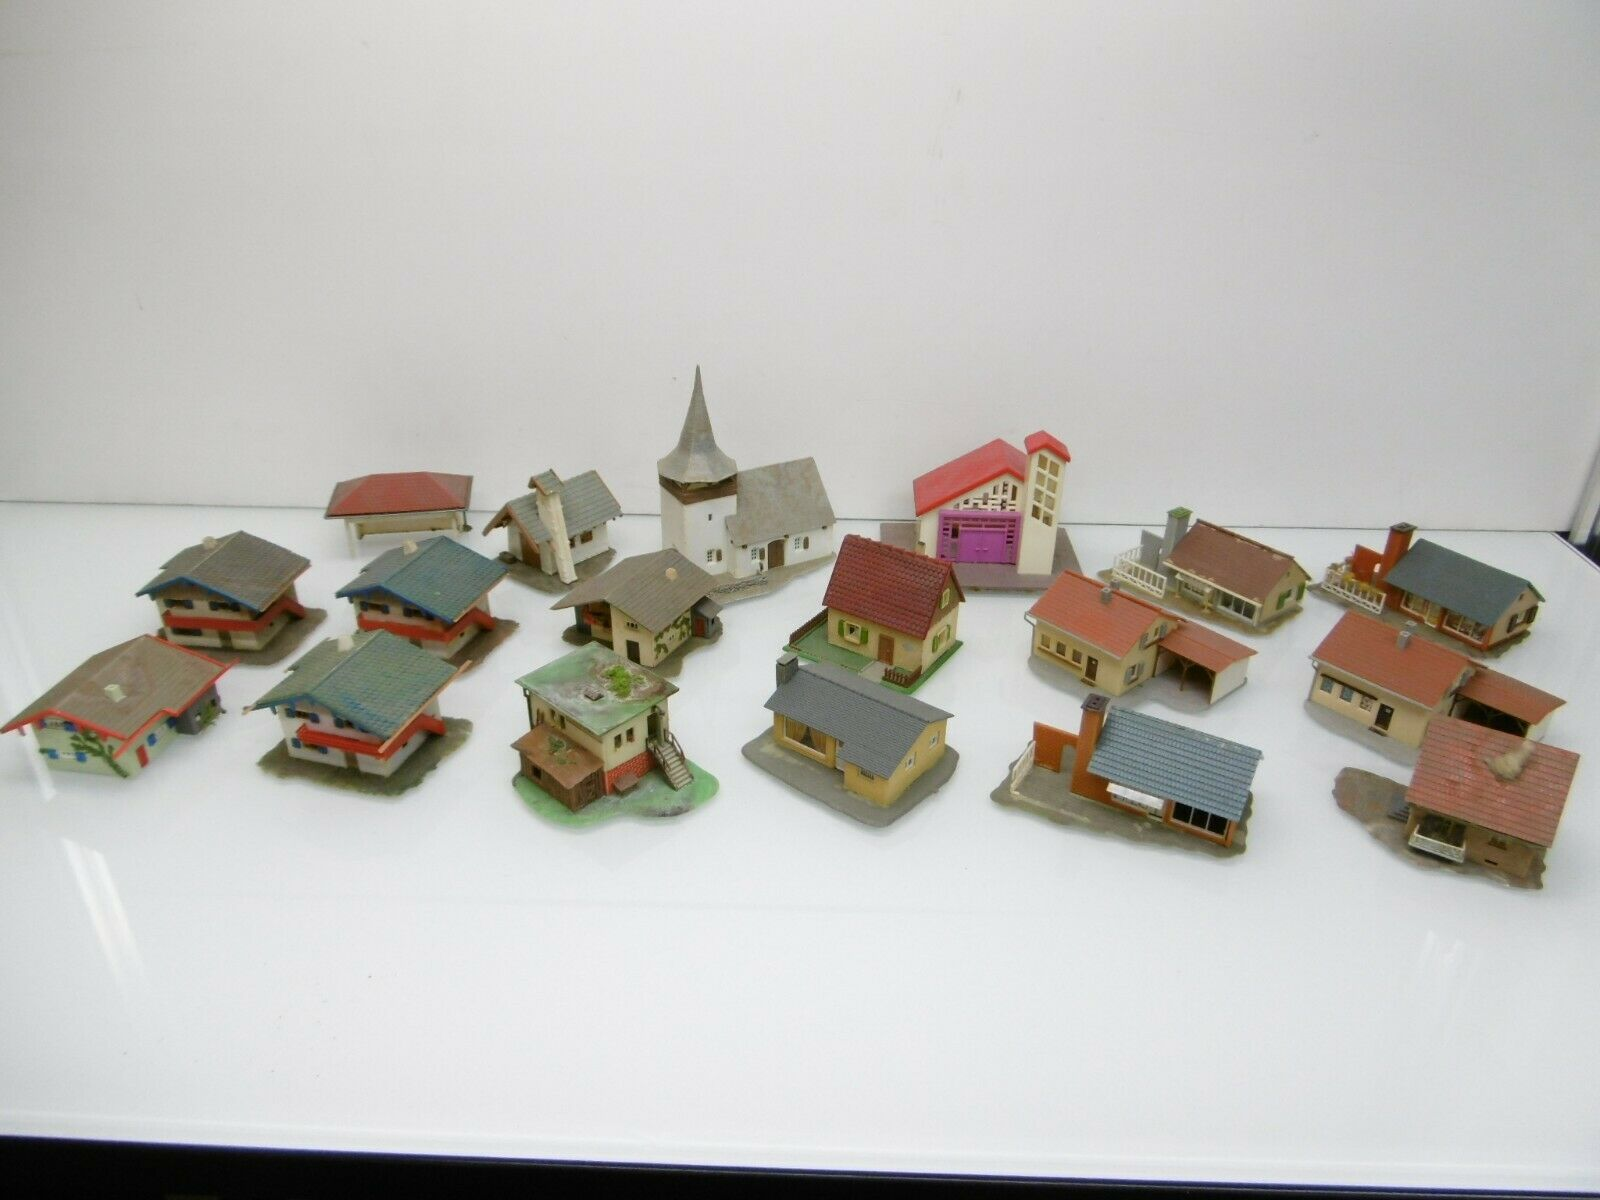 Faller KIBRI 18 Piece Bundle Village from retreat with missing parts